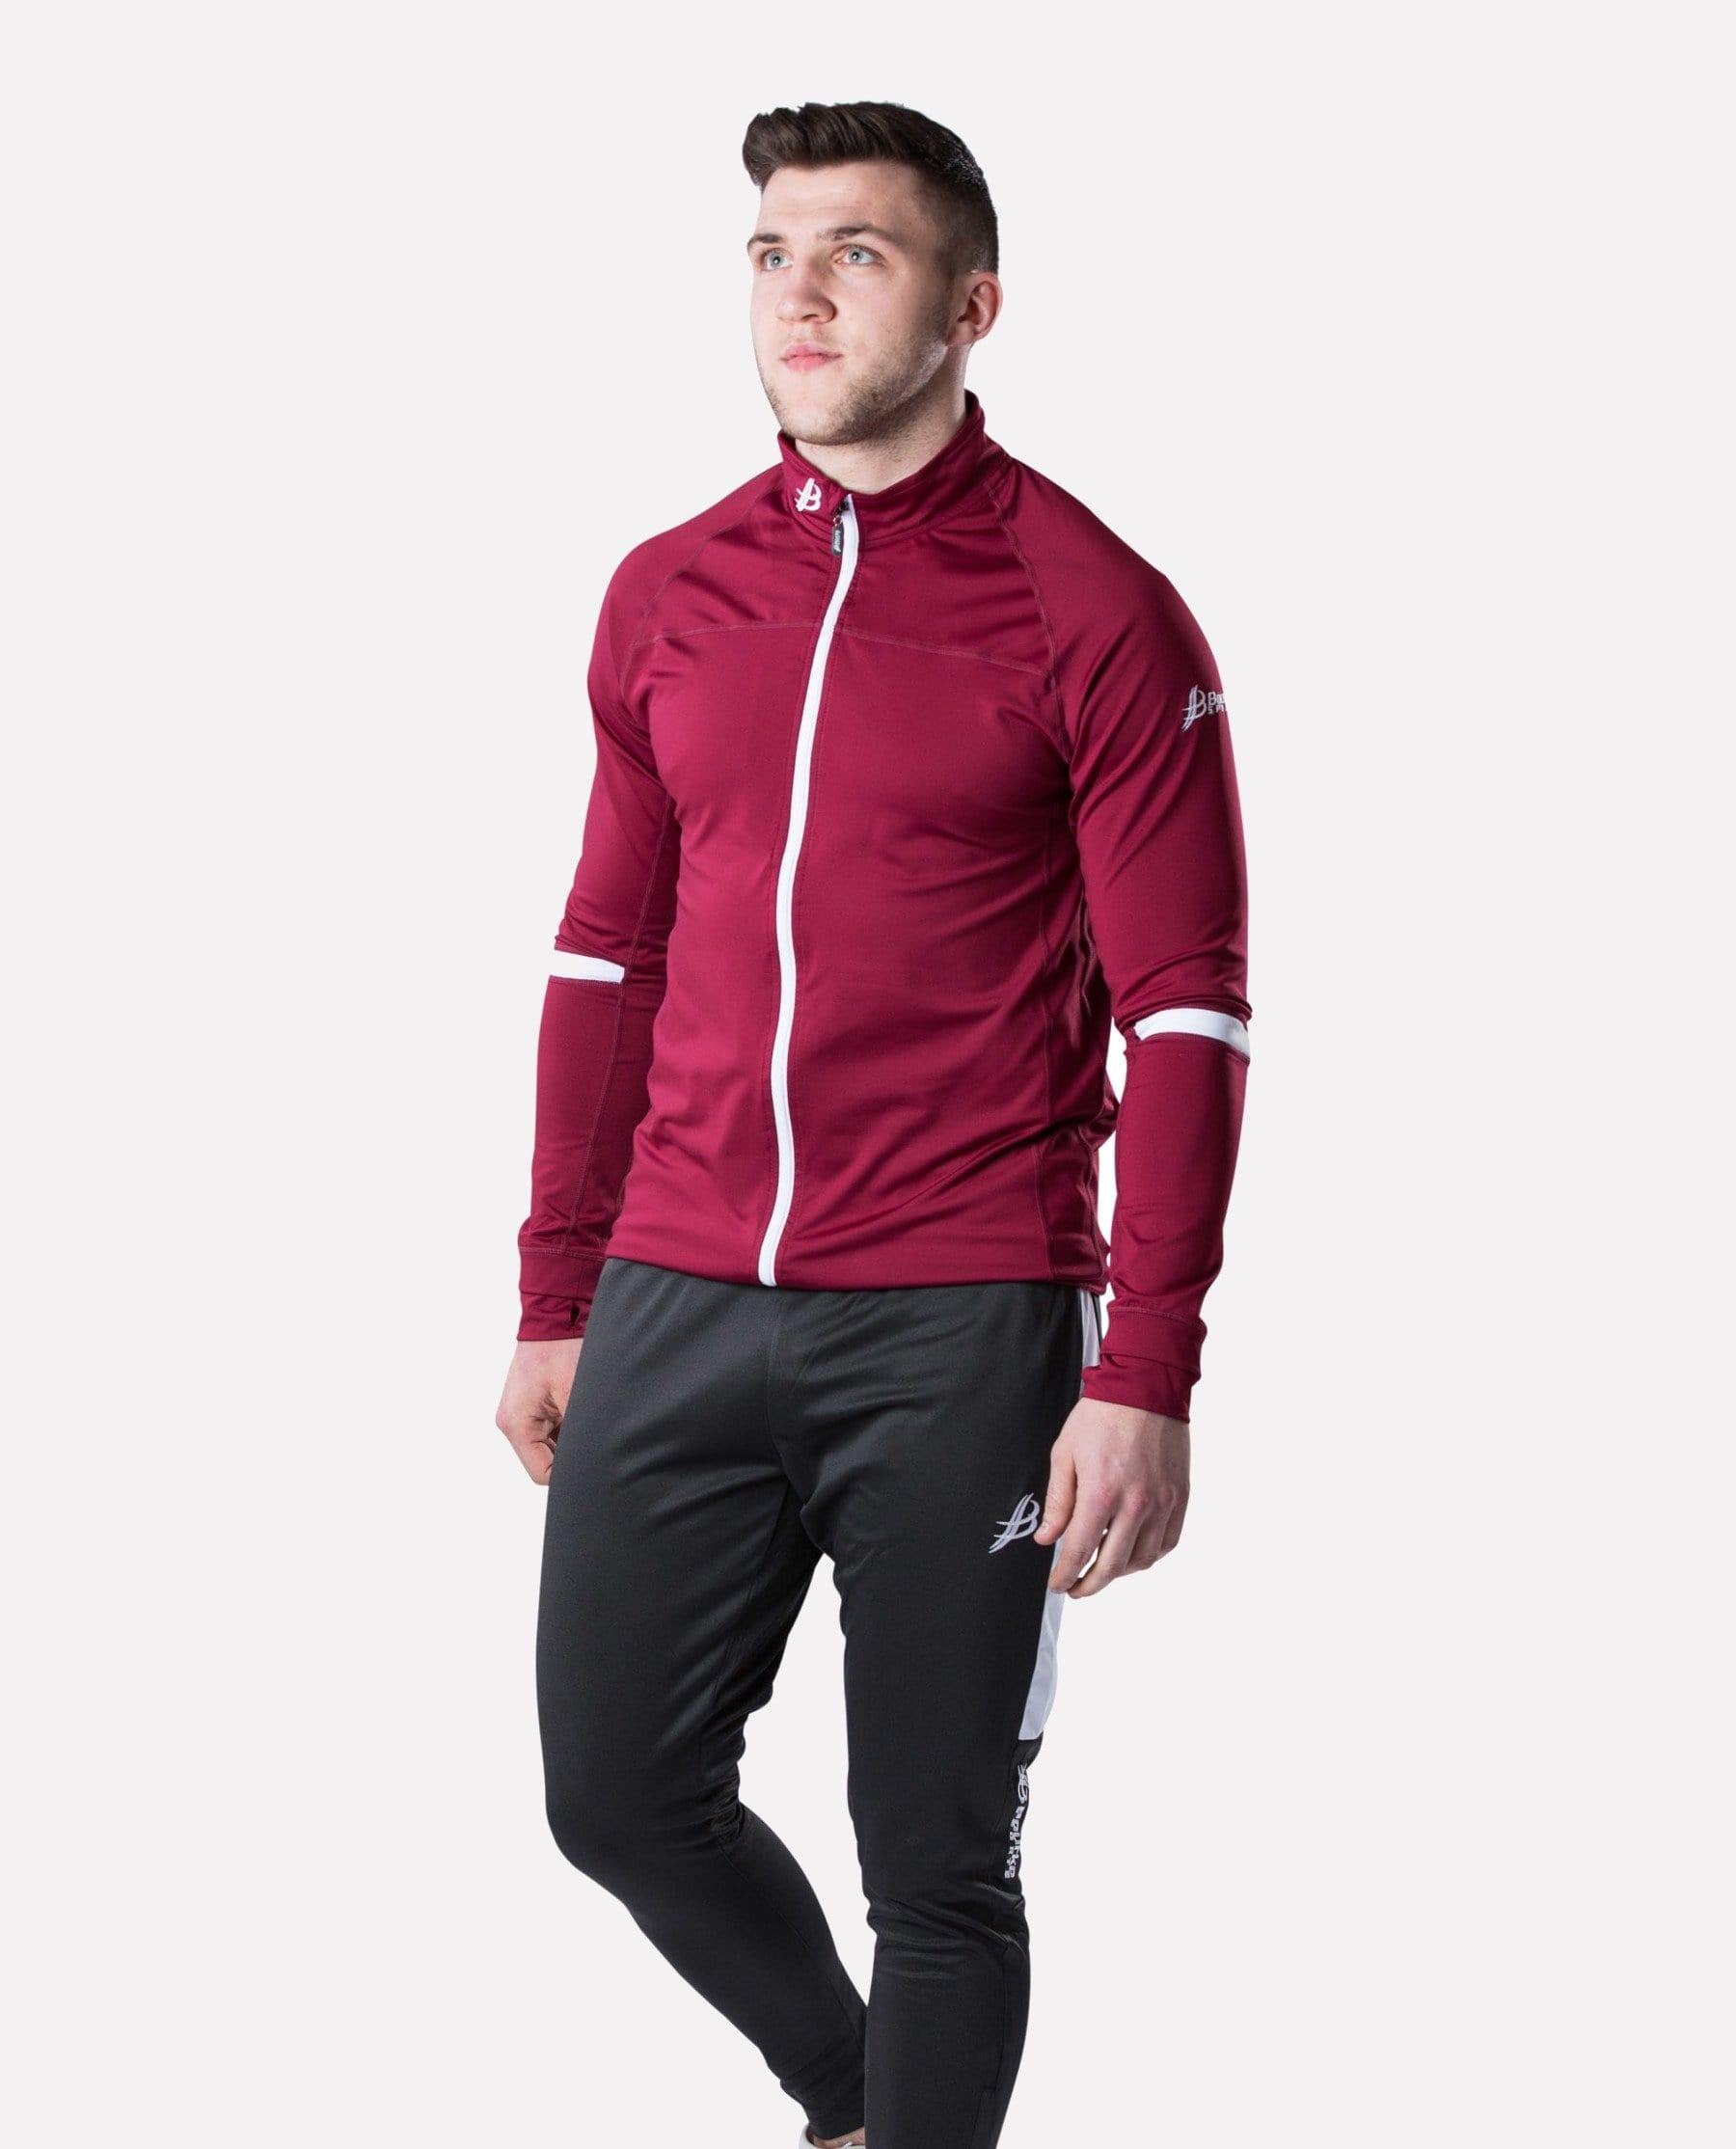 ALPHA Adult Full Zip (Maroon/White) - Bourke Sports Limited